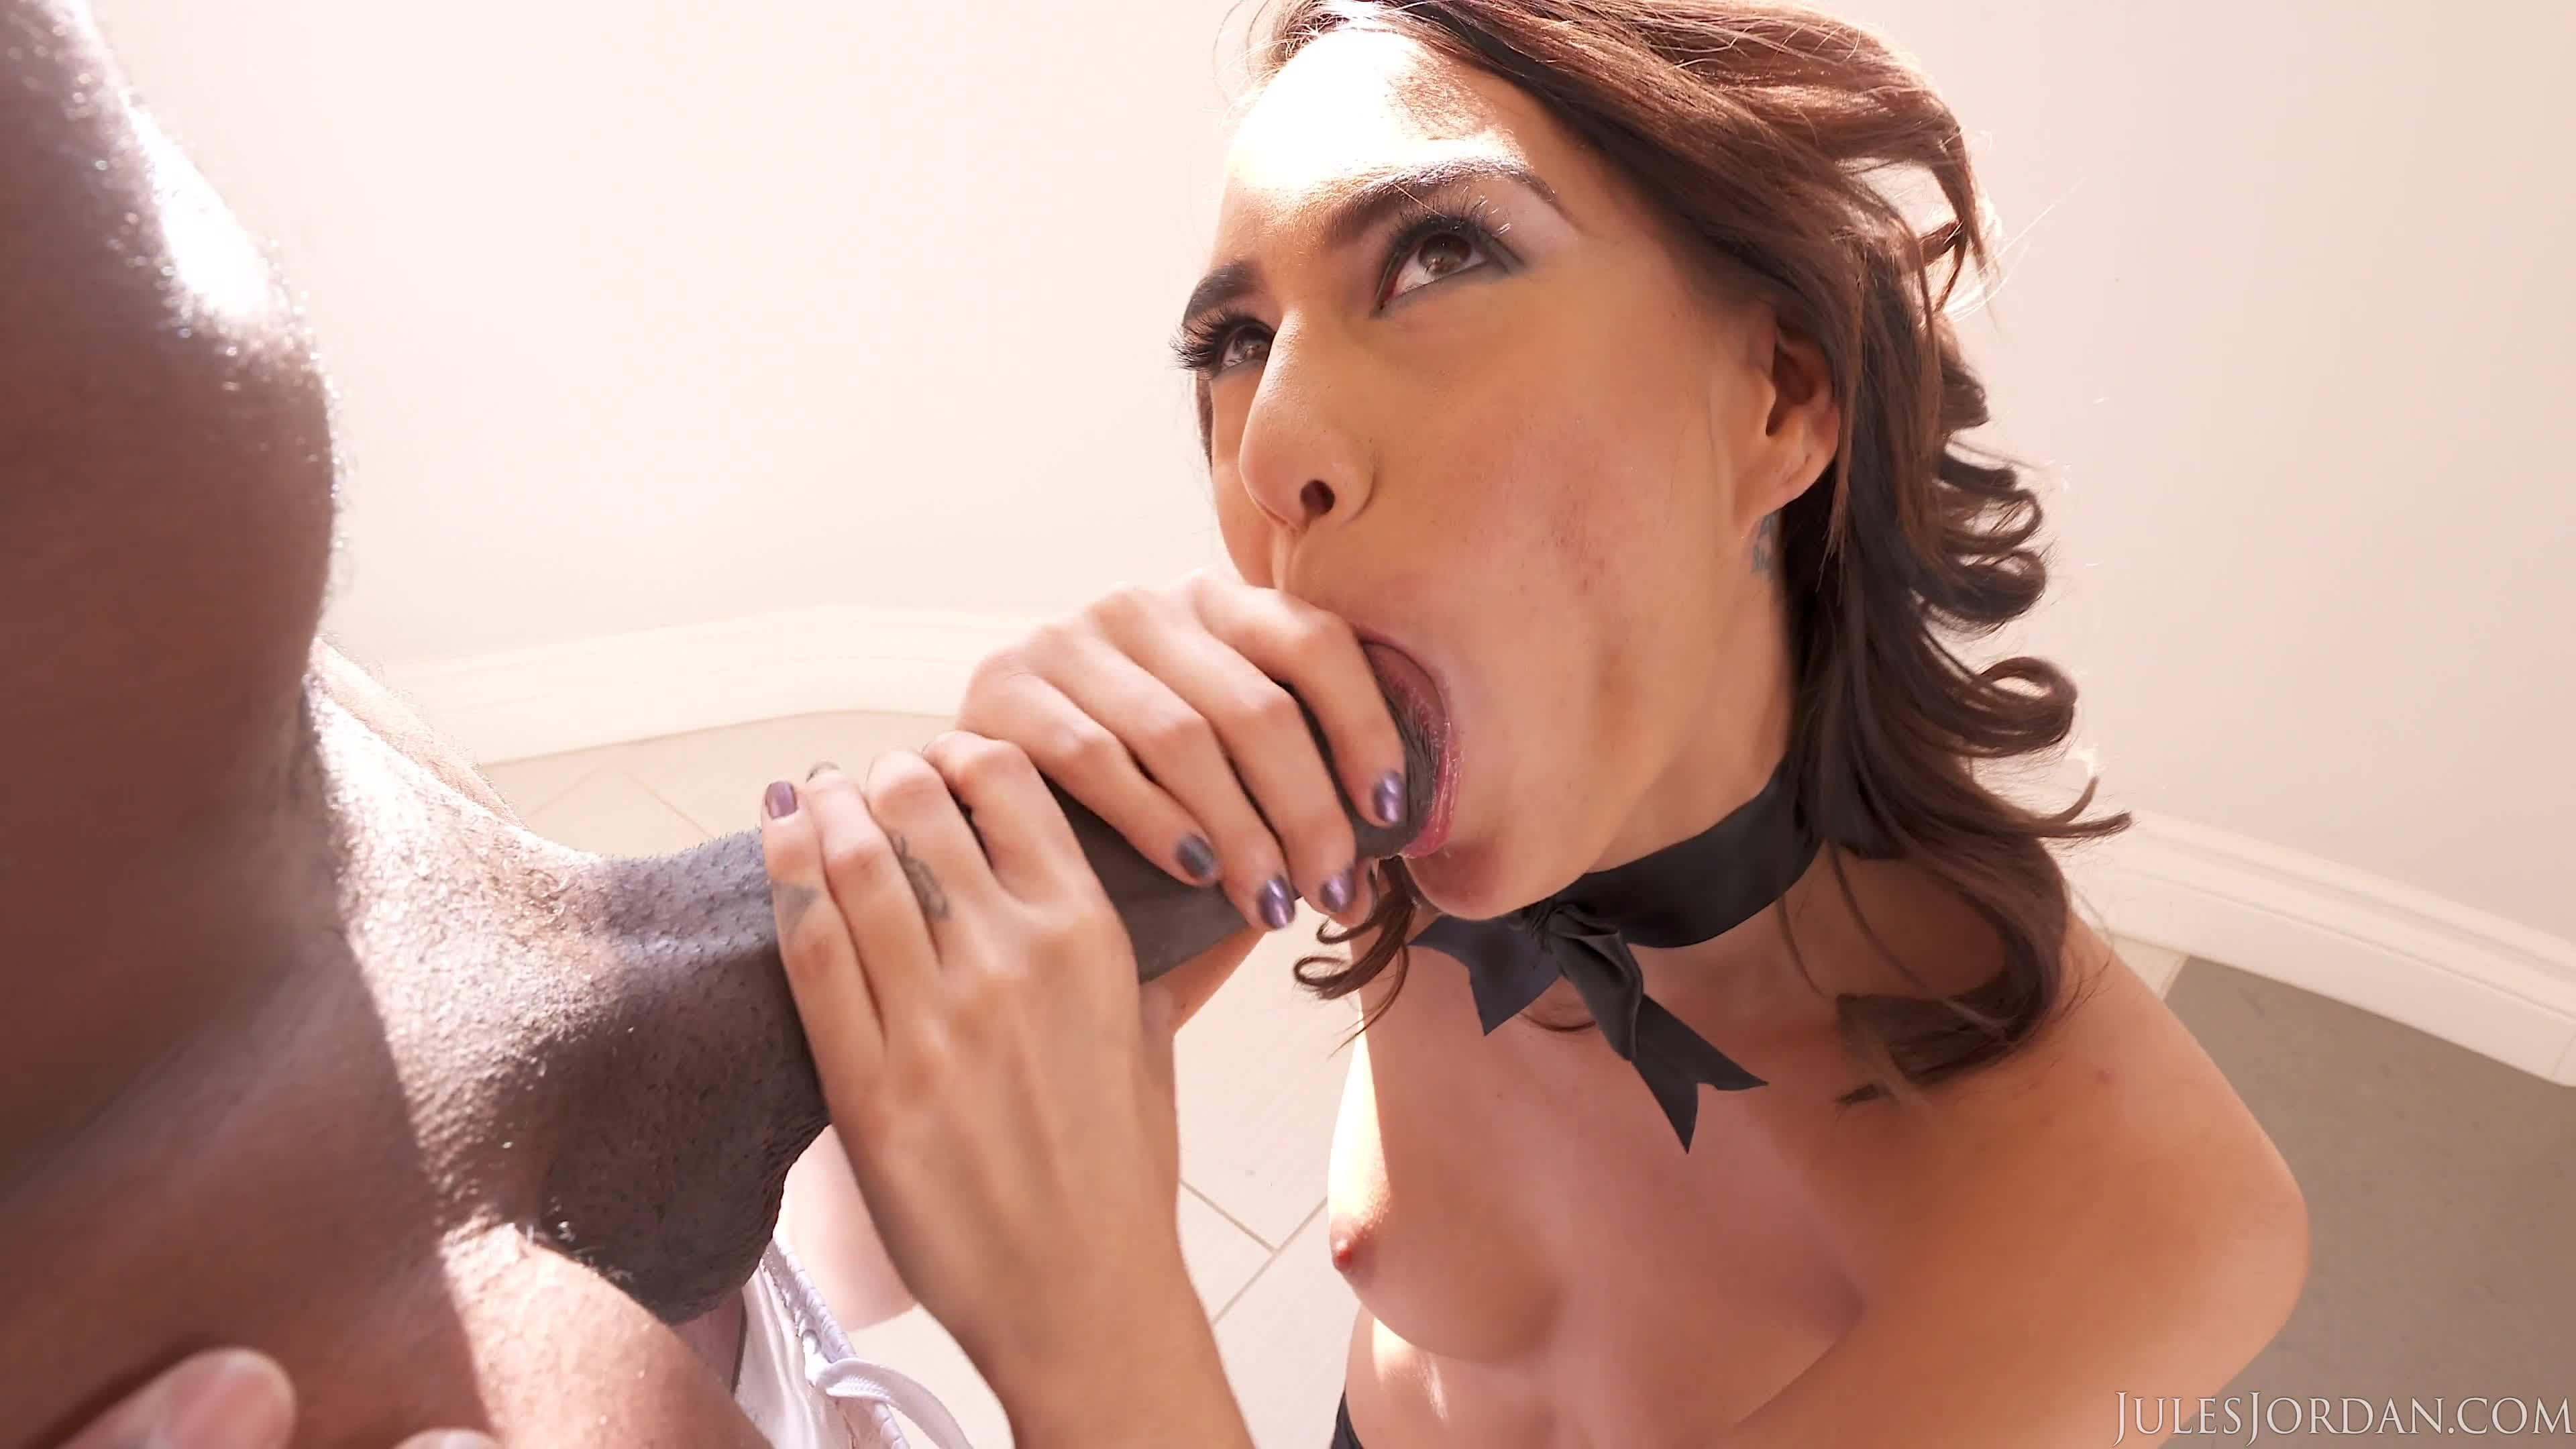 from it. cumshot femdom accept. opinion, interesting